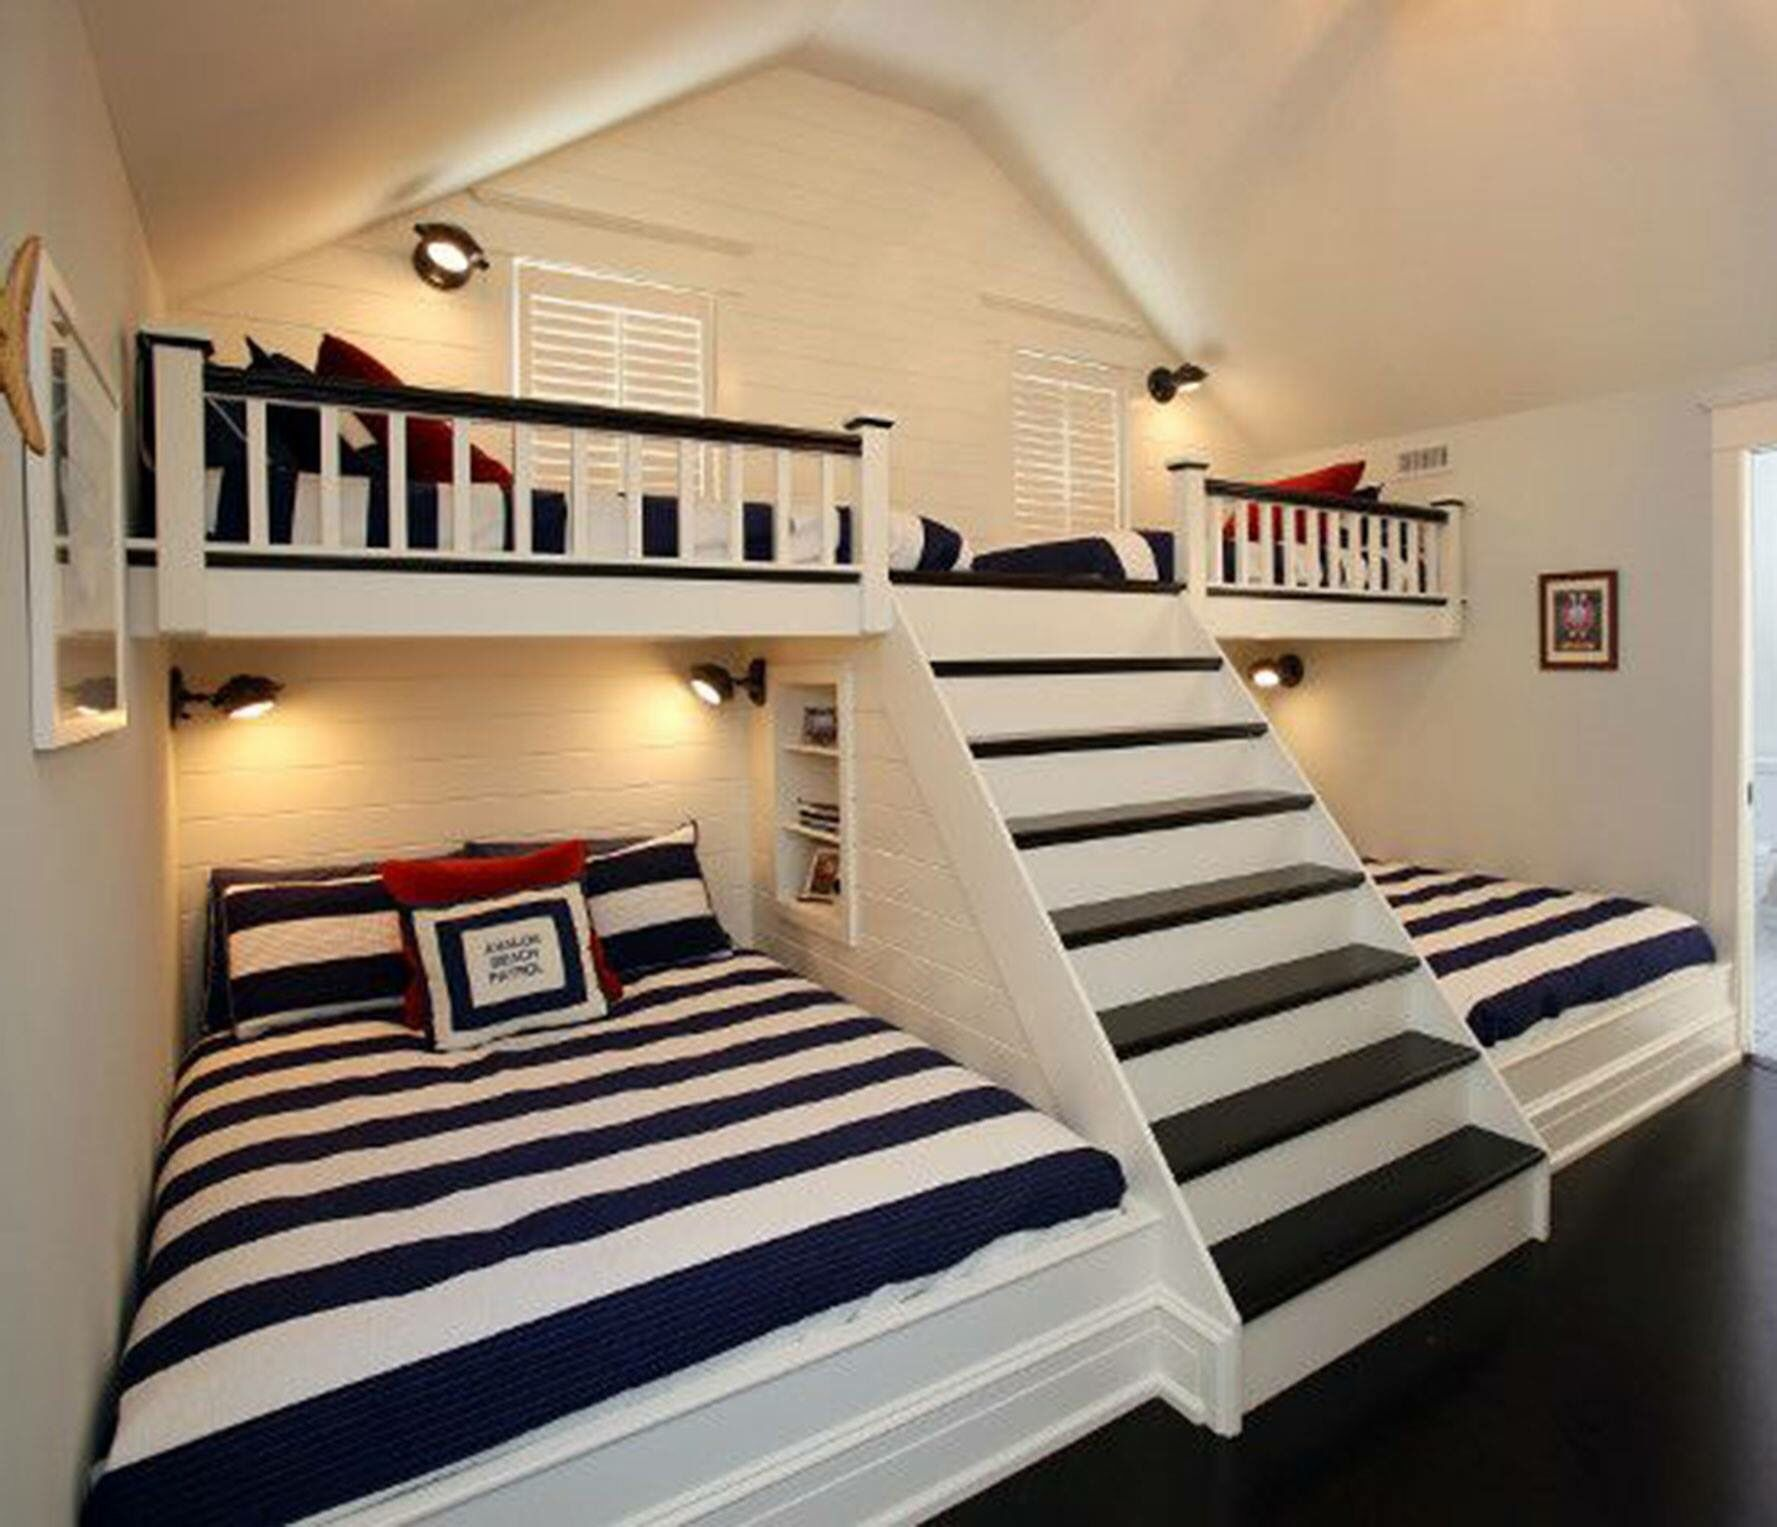 Small bedroom loft bed ideas  This is how you share a room Still somewhat private and maximizing